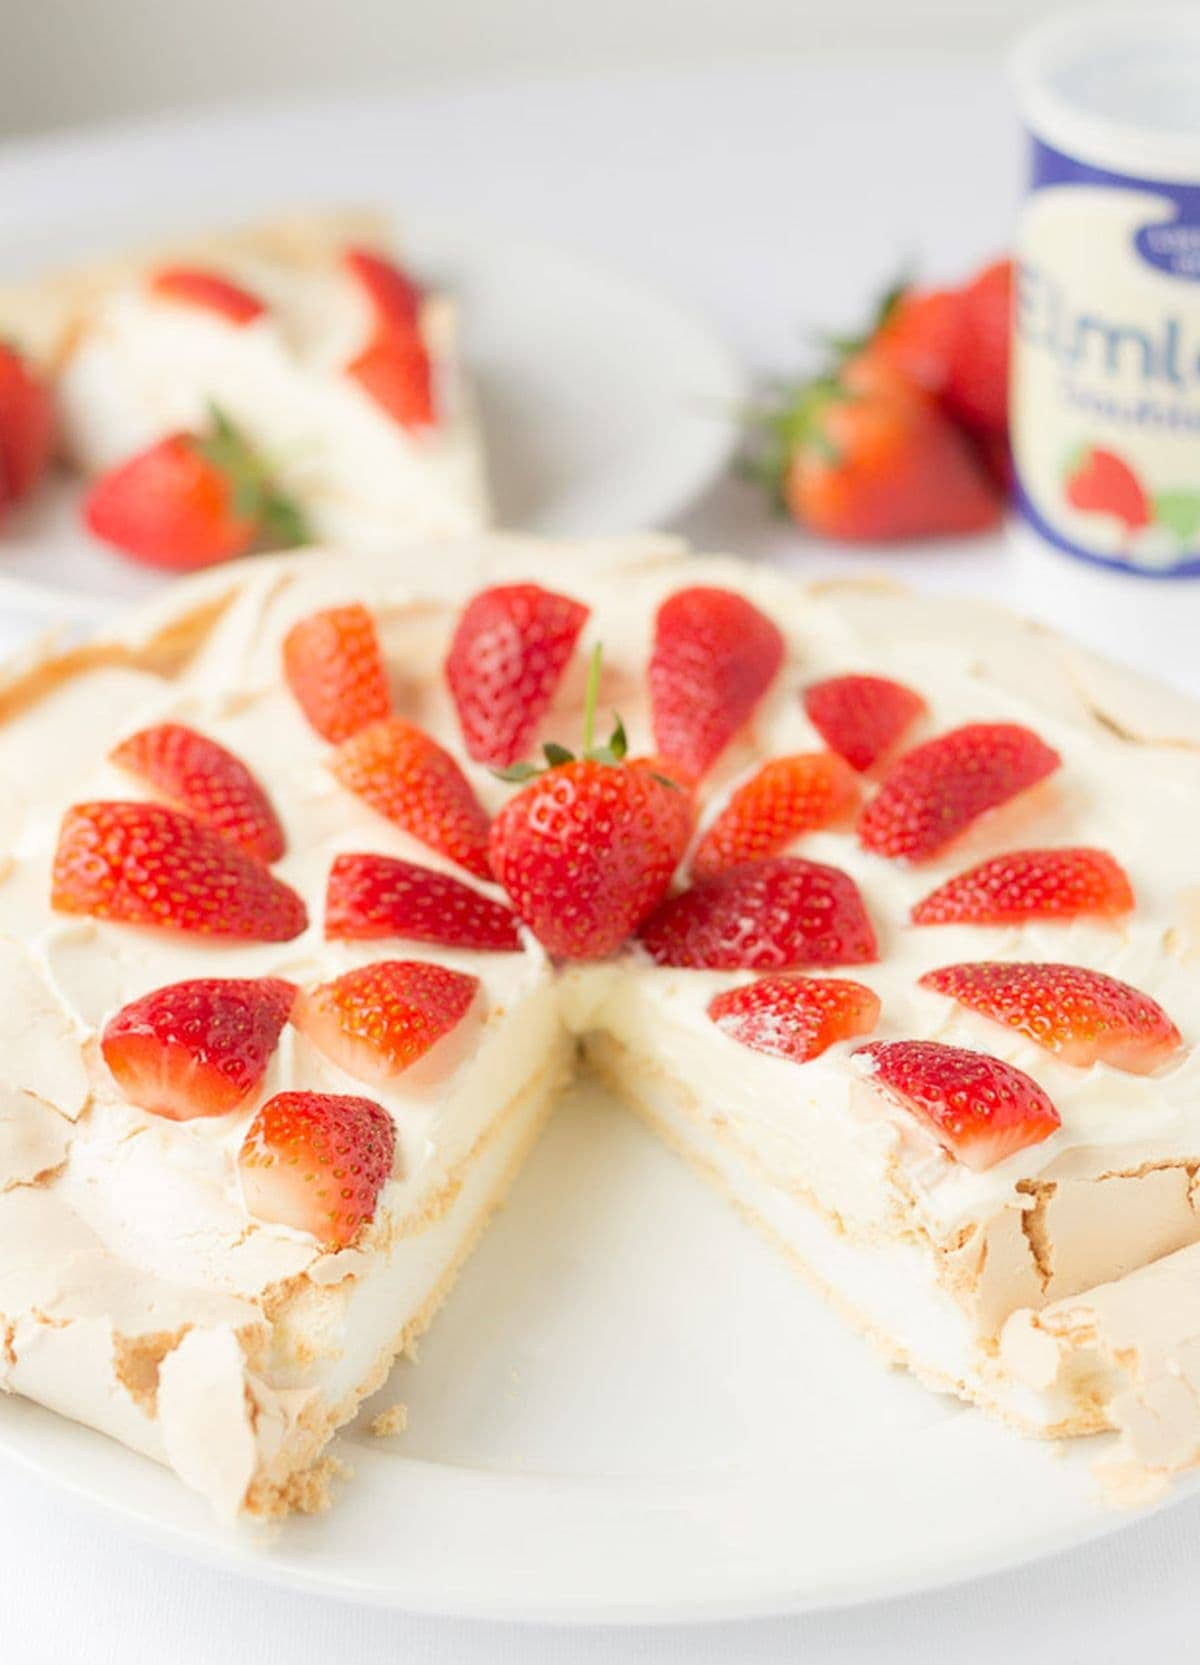 Strawberry Pavlova on a plate decorated with strawberry halves with a slice taken out.